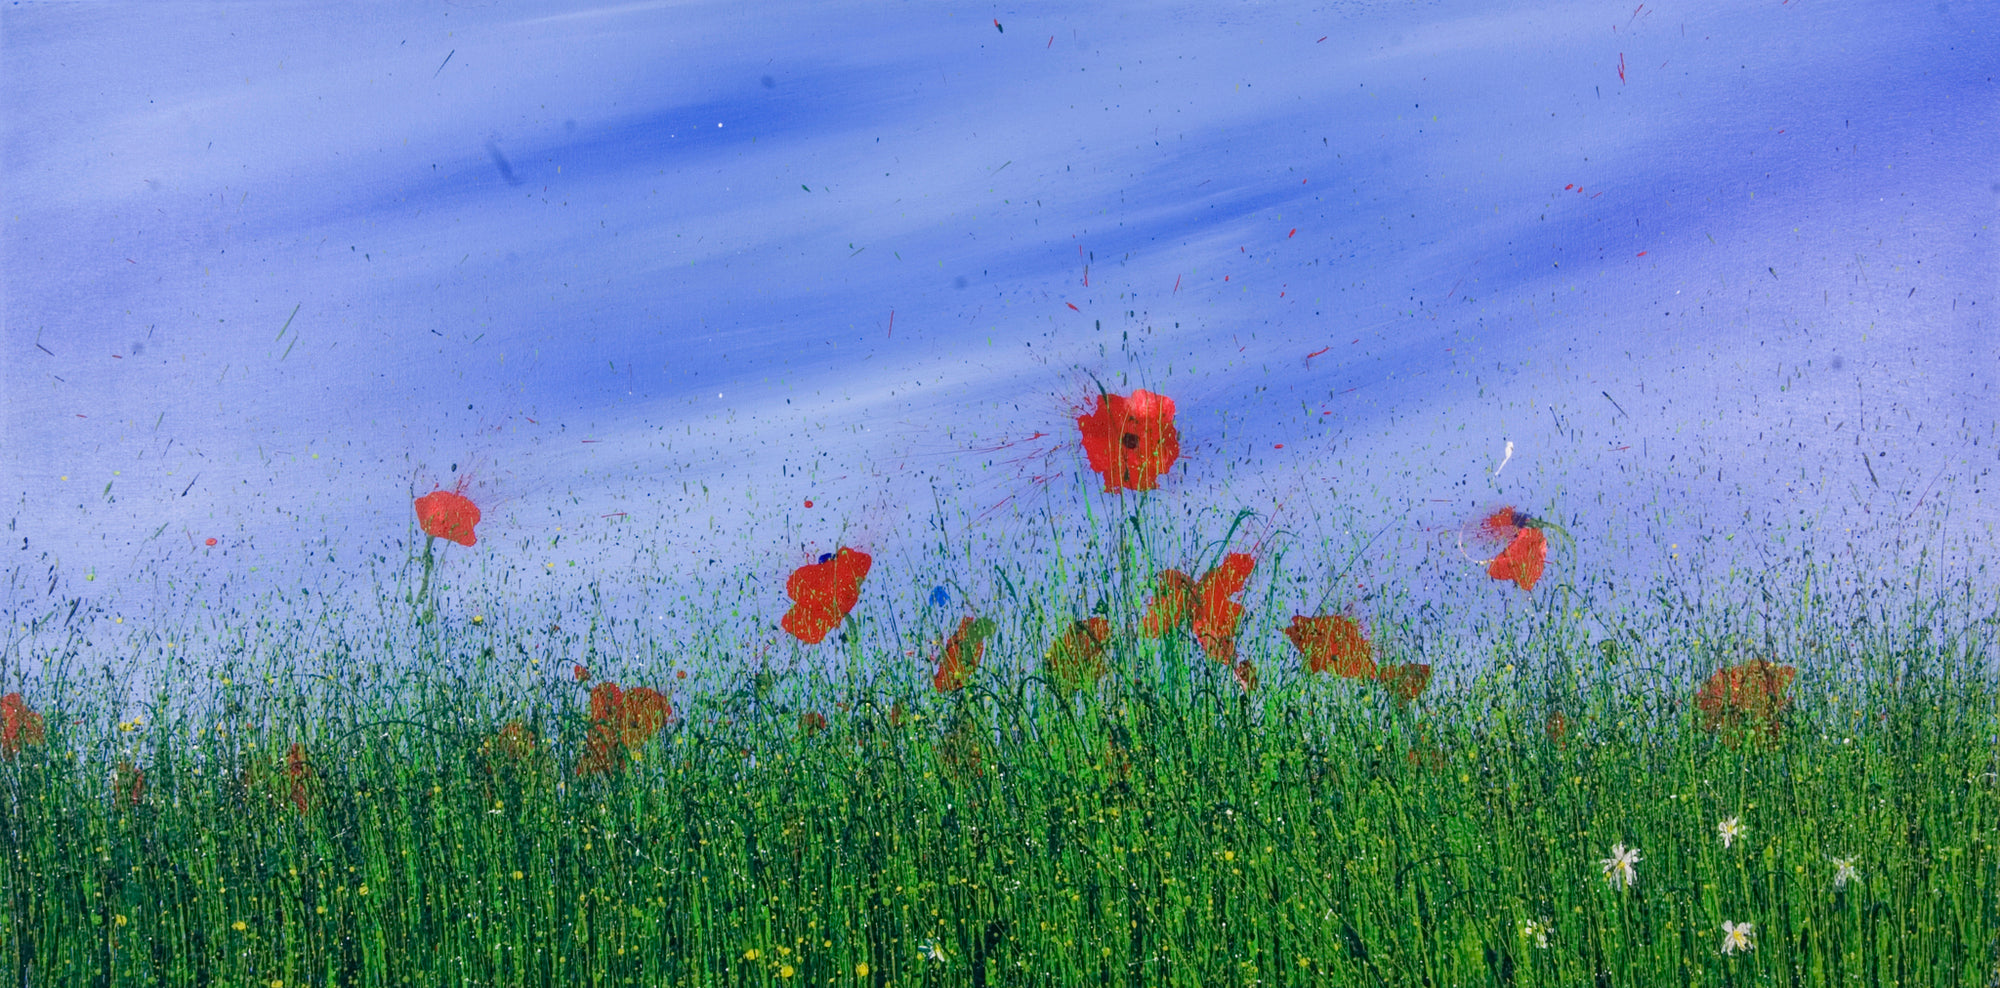 Love of you, Royden Astrop, British artist, painter, wild grasses, grass painting, oil painting, poppy painting